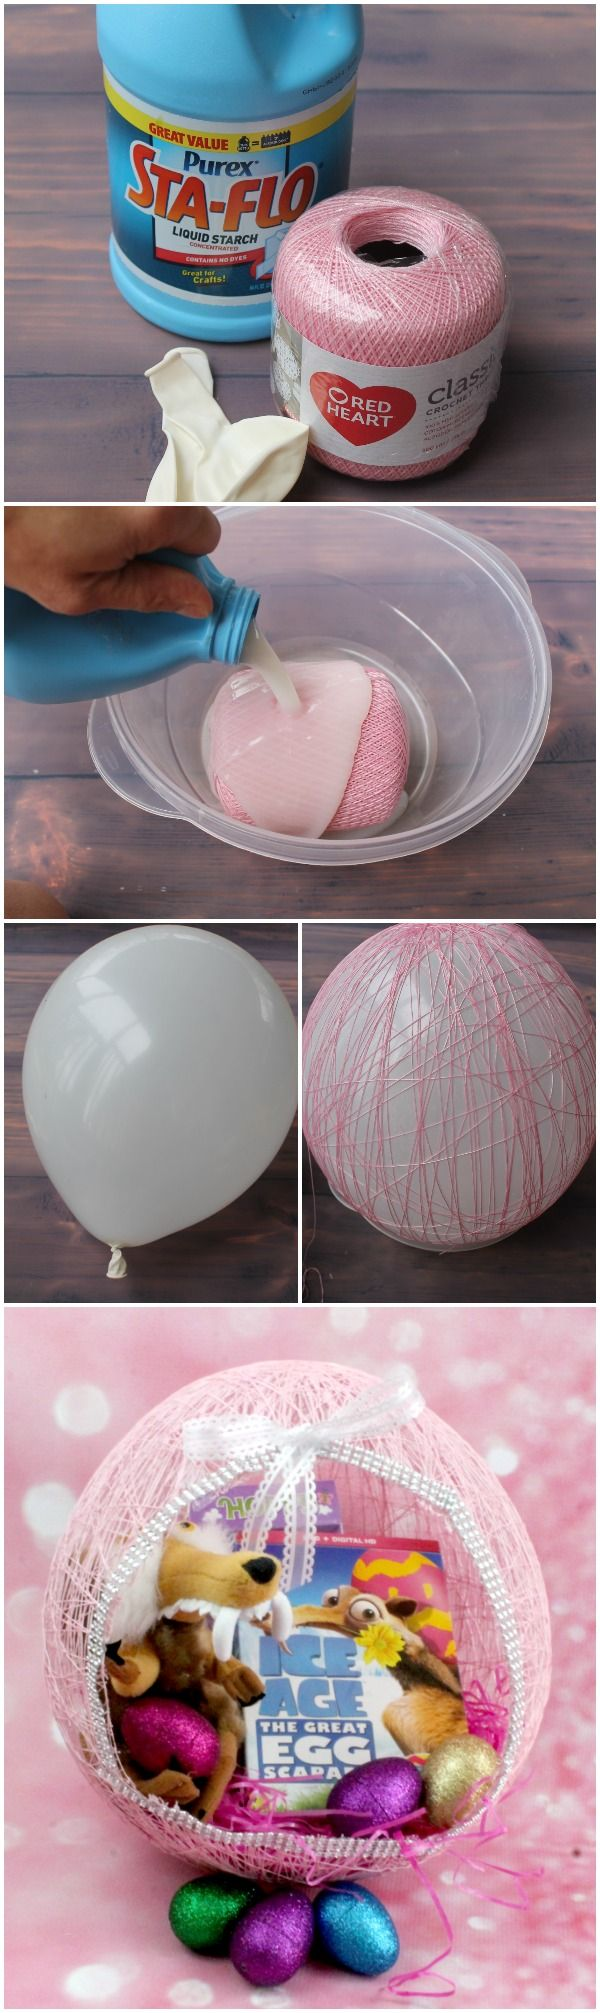 DIY String Easter Egg Baskets are super easy to make and very inexpensive. This Easter Egg Yarn Balloon Basket is a great DIY Easter Basket for Kids. #Easter #Eastercrafts #easterbaksetideas #crafts